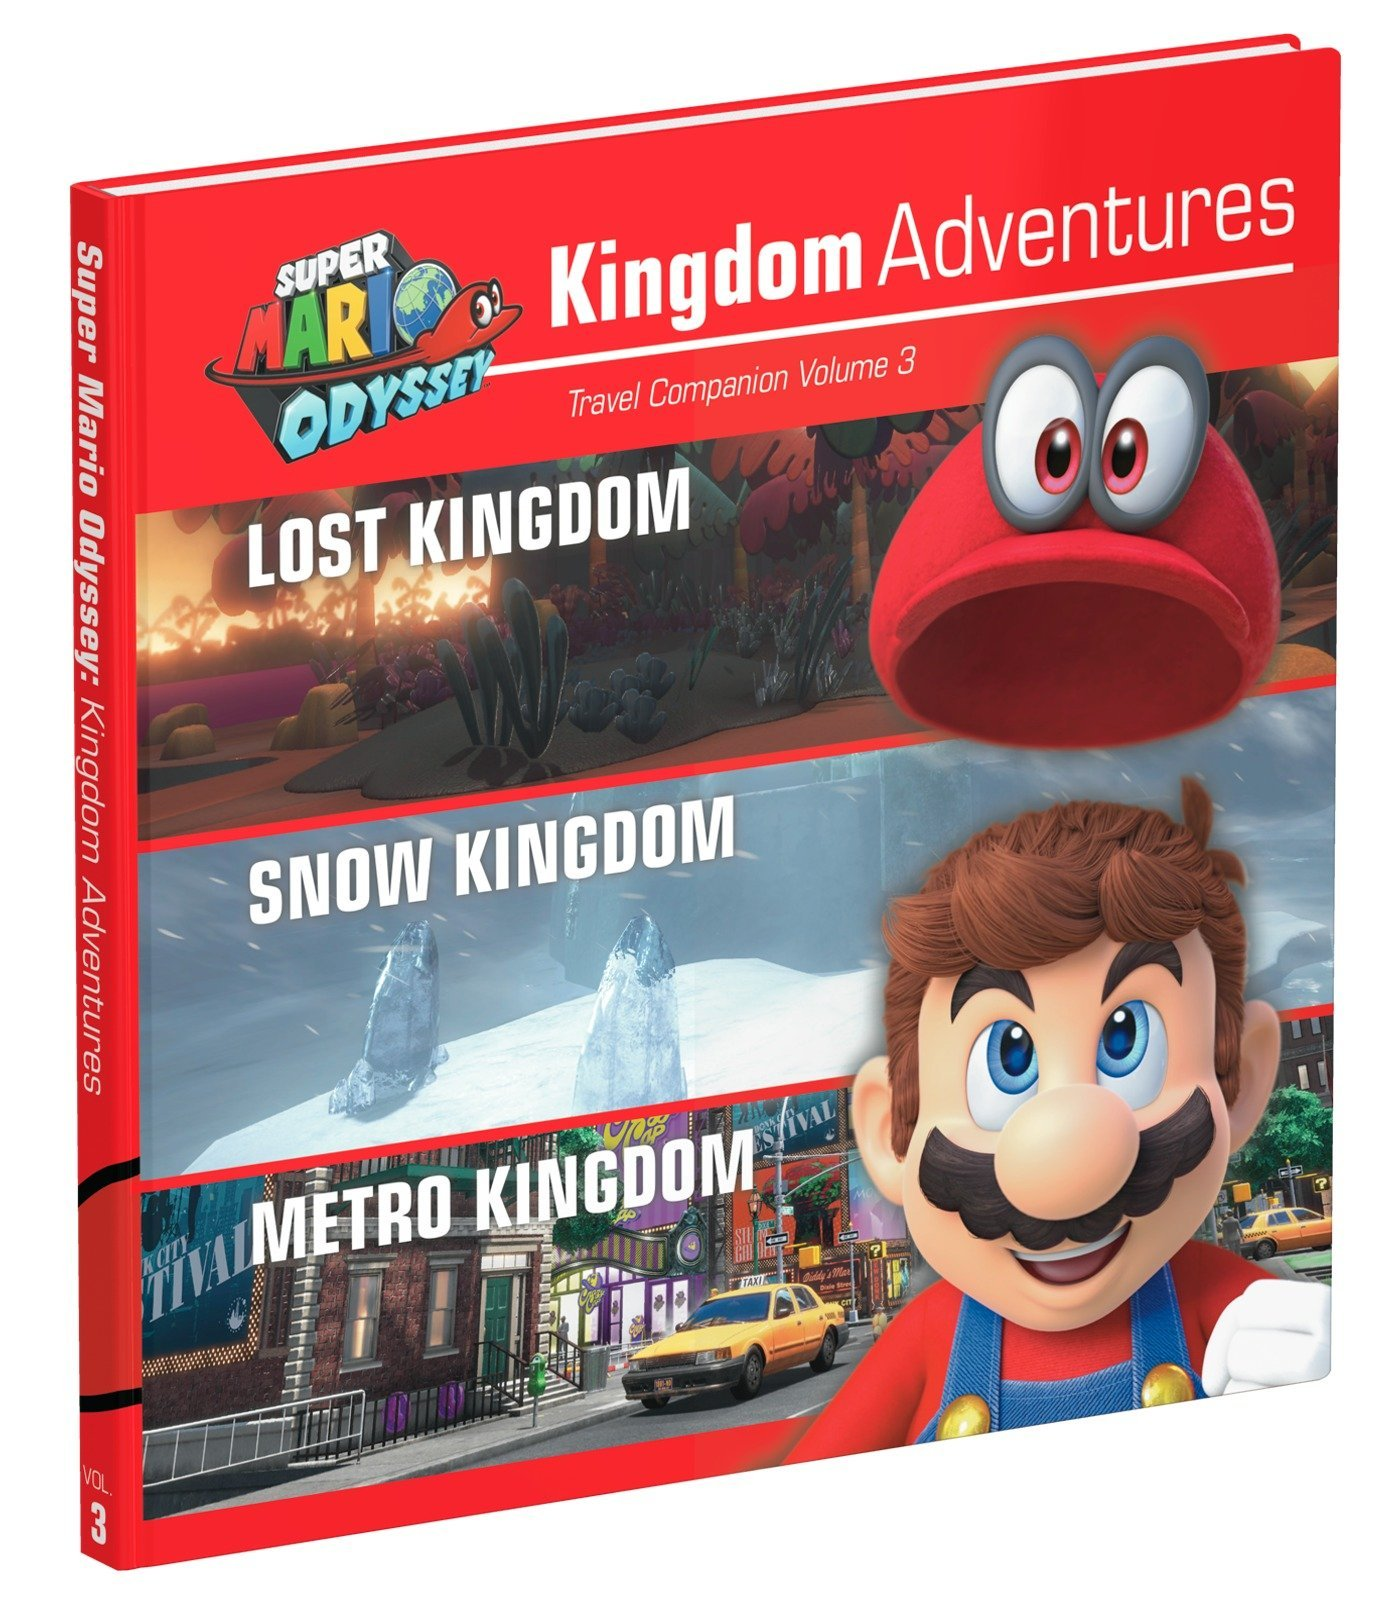 Super Mario Odyssey Kingdom Adventures Vol 3 Idioma Inglés: Amazon.es: Prima Games: Libros en idiomas extranjeros